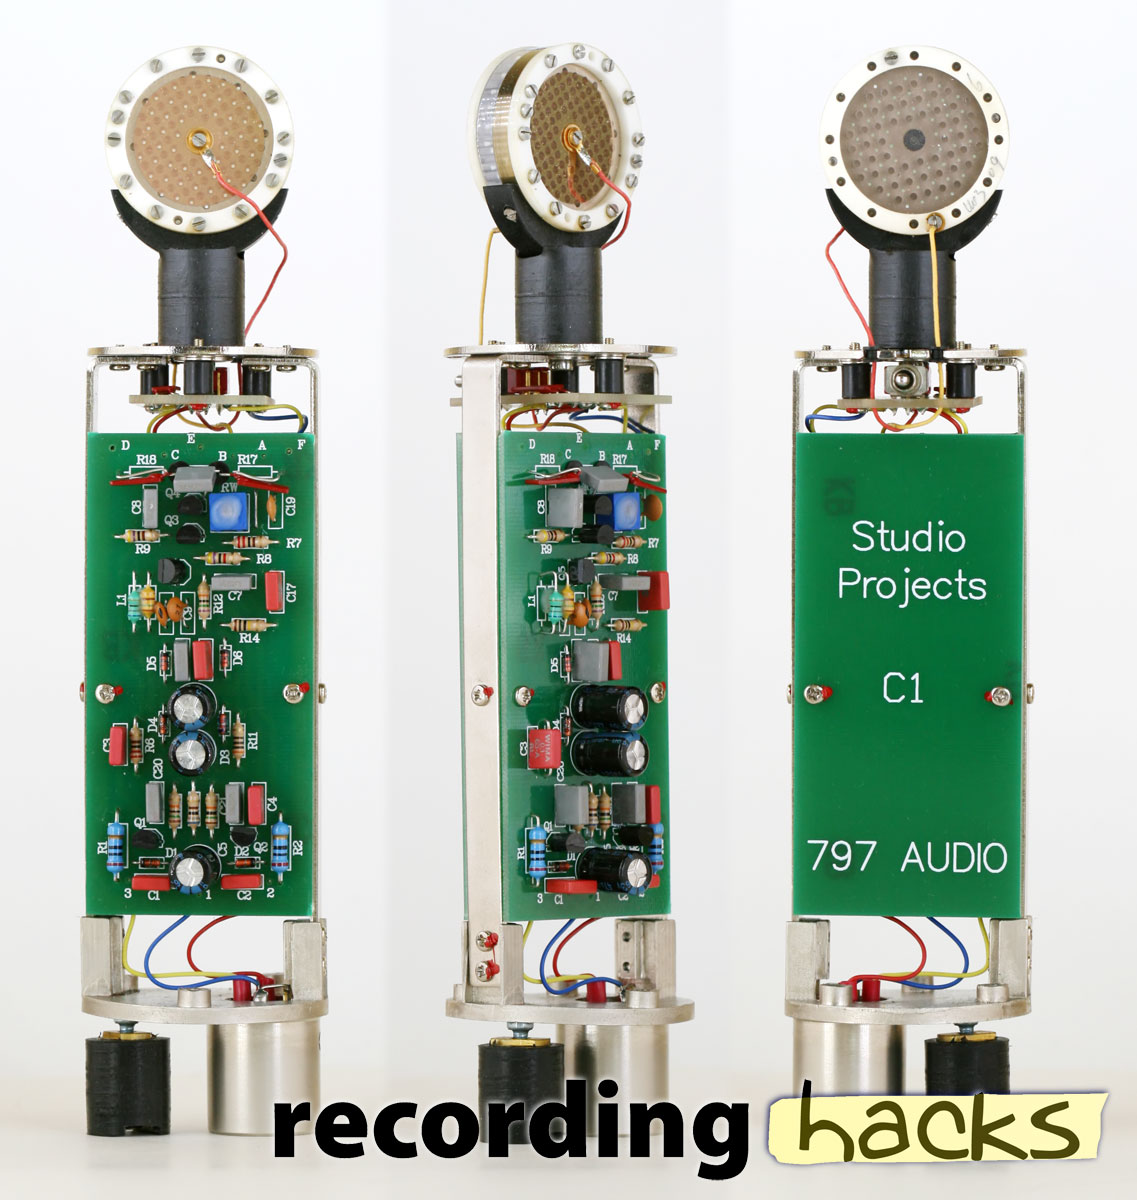 Condenser Microphone Circuit Board Guide And Troubleshooting Of Mic Preamp Diagram Studio Projects C1 797 Recordinghacks Com Rh Amplifier